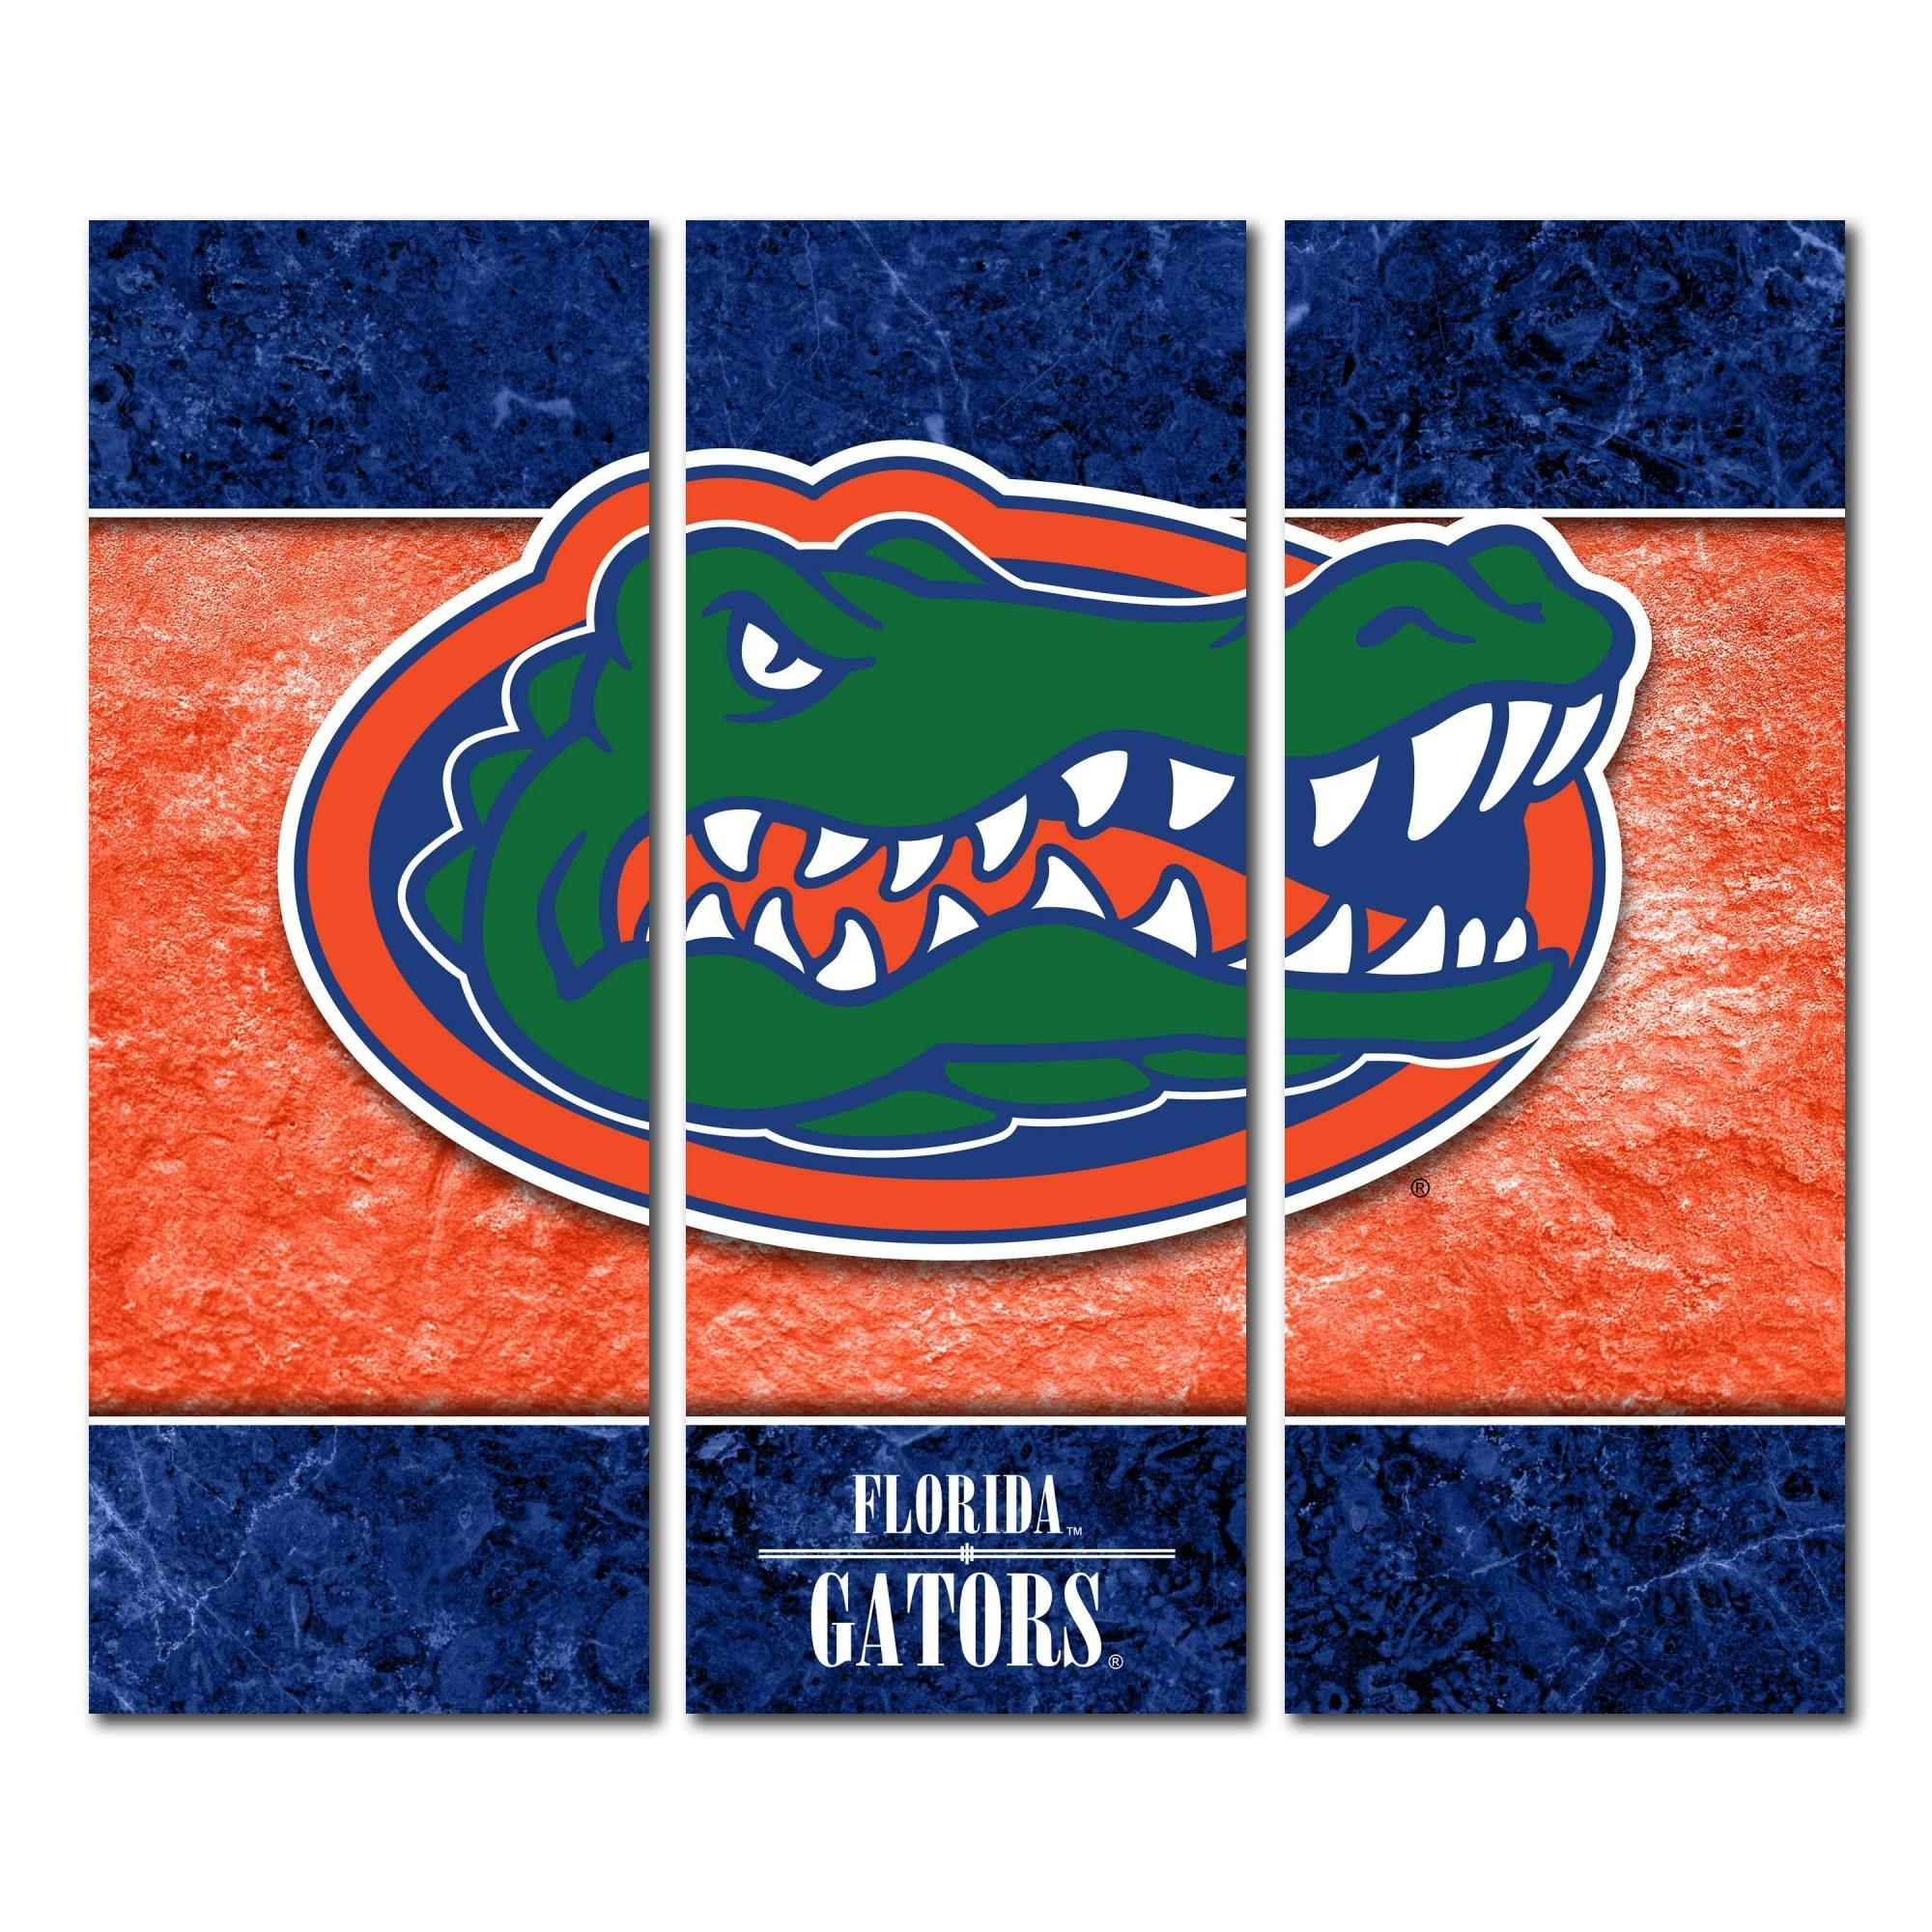 Cornhole Boards & Tailgate Games | Victory Tailgate Intended For Florida Gator Wall Art (Image 7 of 20)